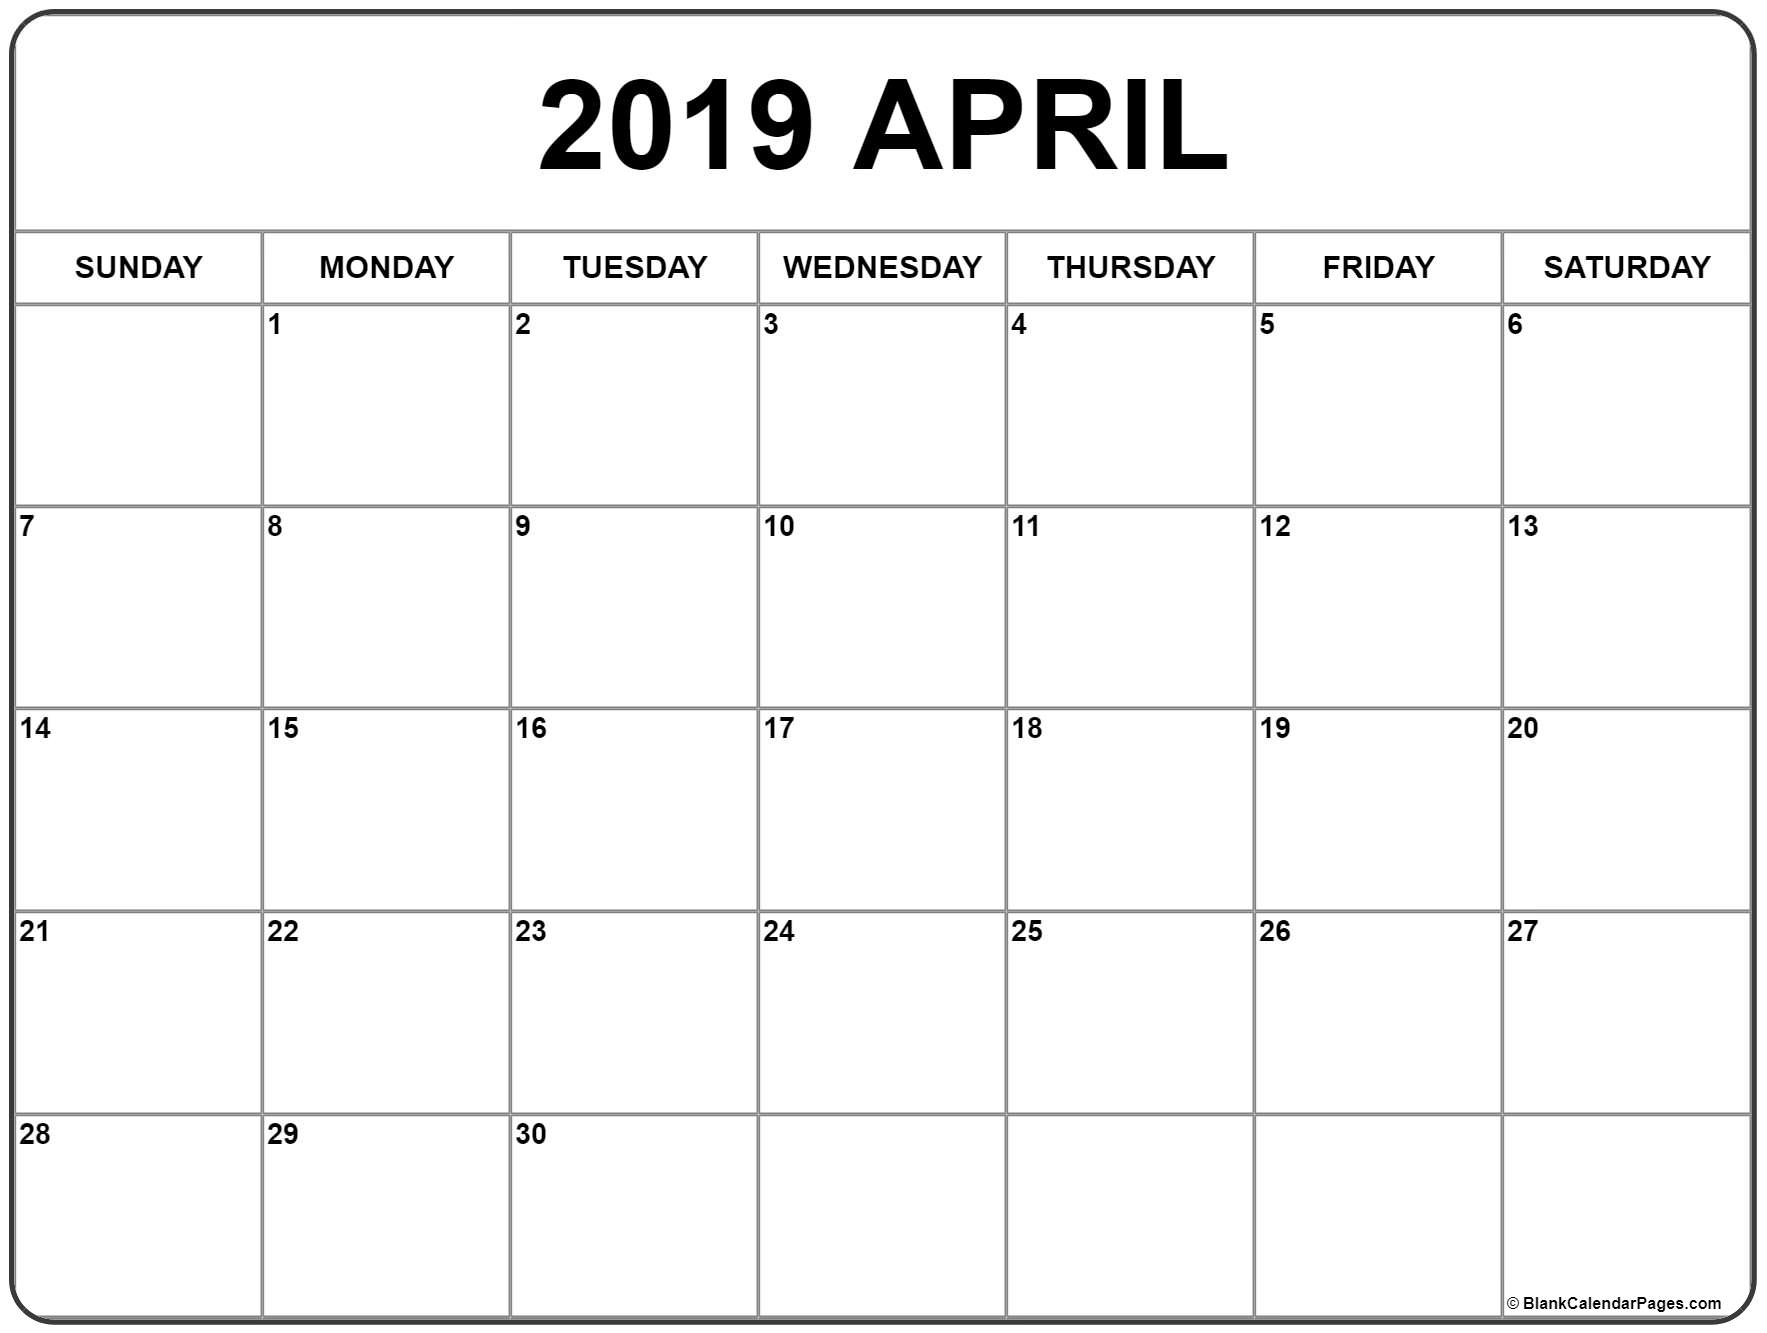 April 2019 Calendar | Free Printable Monthly Calendars within Free Printable September Blank Calendars With Christian Themes